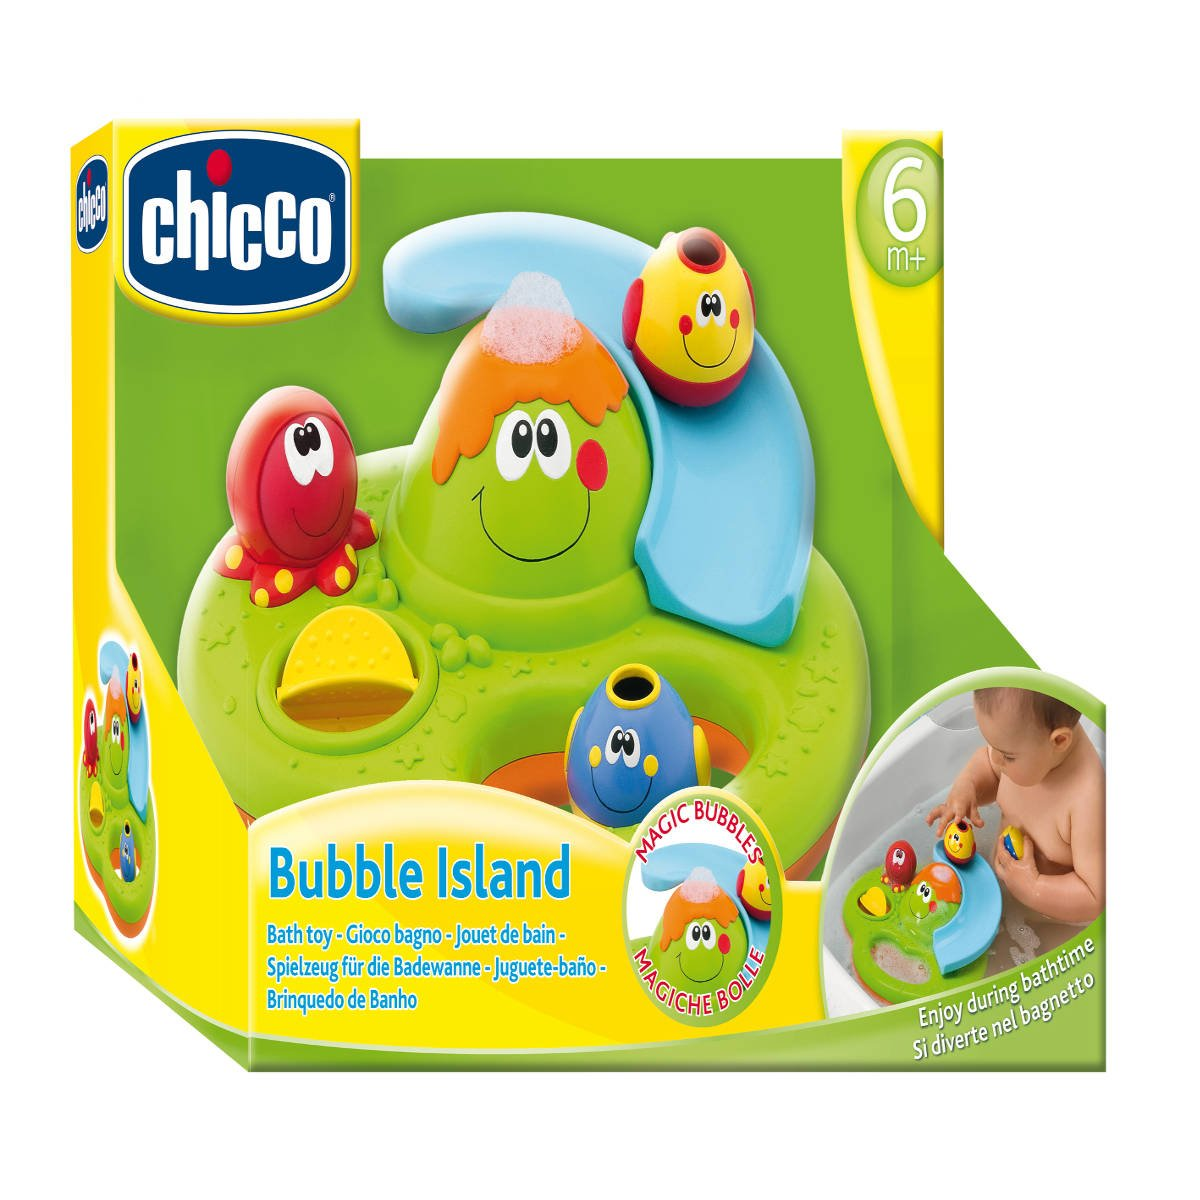 Buy Chicco Bubble Island Bath Toy Online at Low Prices in India ...